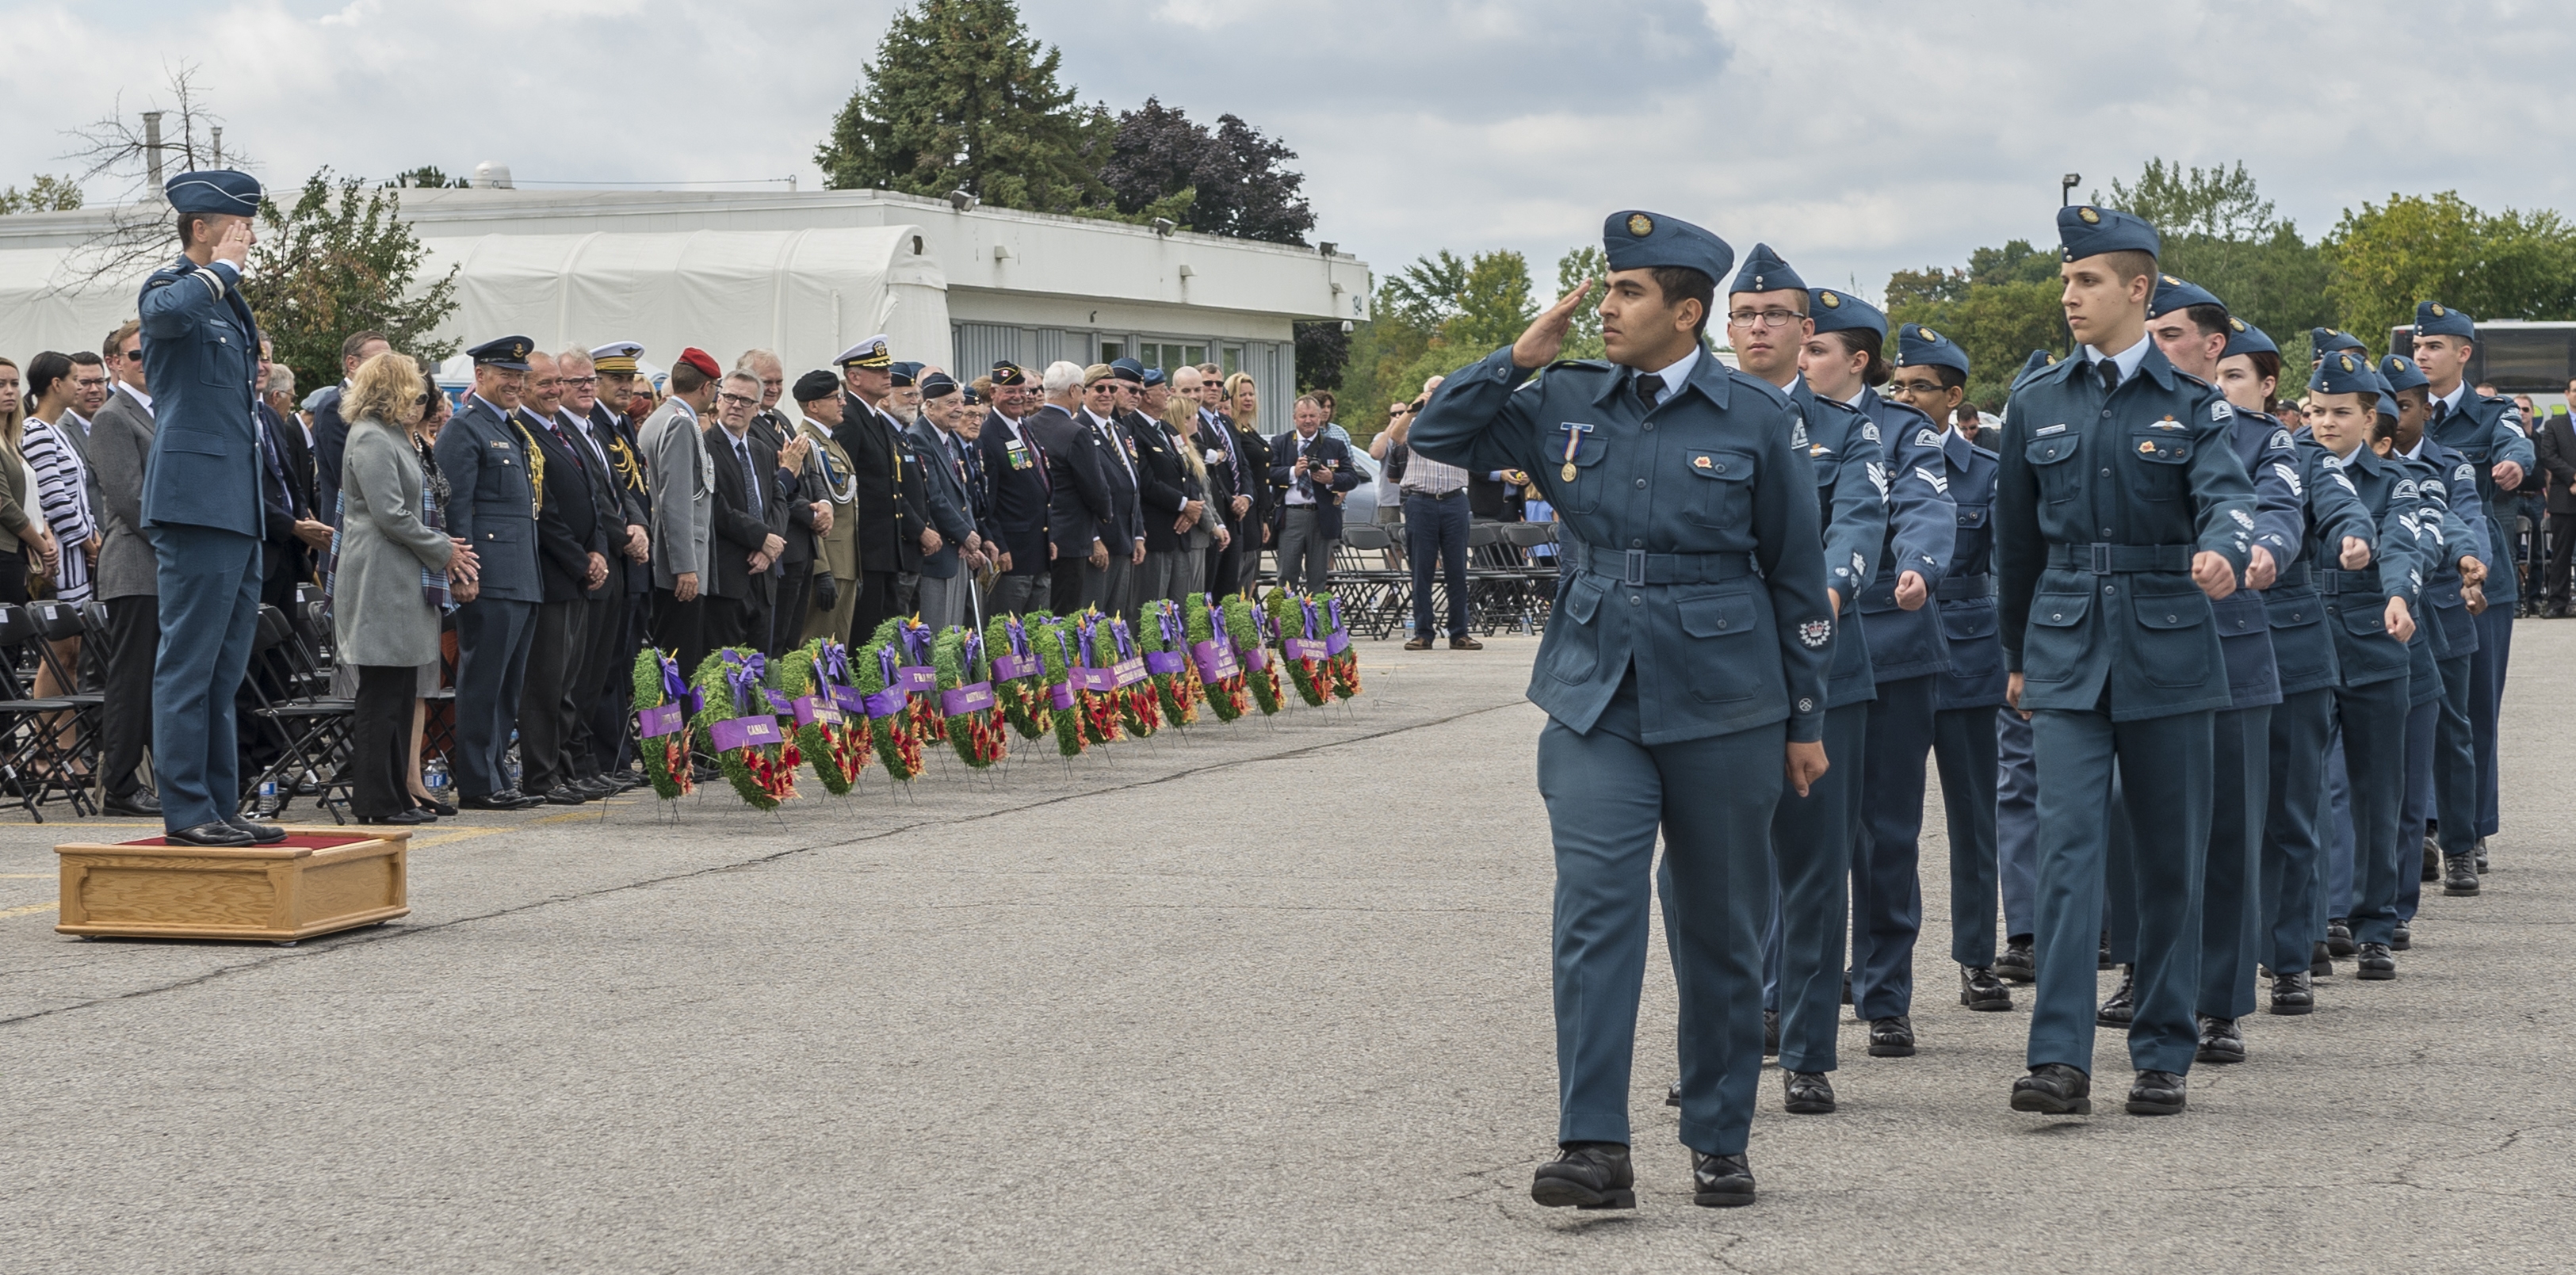 Royal Canadian Air Cadets salute the deputy commander of the RCAF, Major-General Al Meinzinger, during the marchpast at the conclusion of the national Battle of Britain ceremony held September 18, 2016, at the Canada Aviation and Space Museum in Ottawa. Cadets from several area cadet squadron participated in the event. PHOTO: Corporal Alana Morin, FA03-2016-0032-038